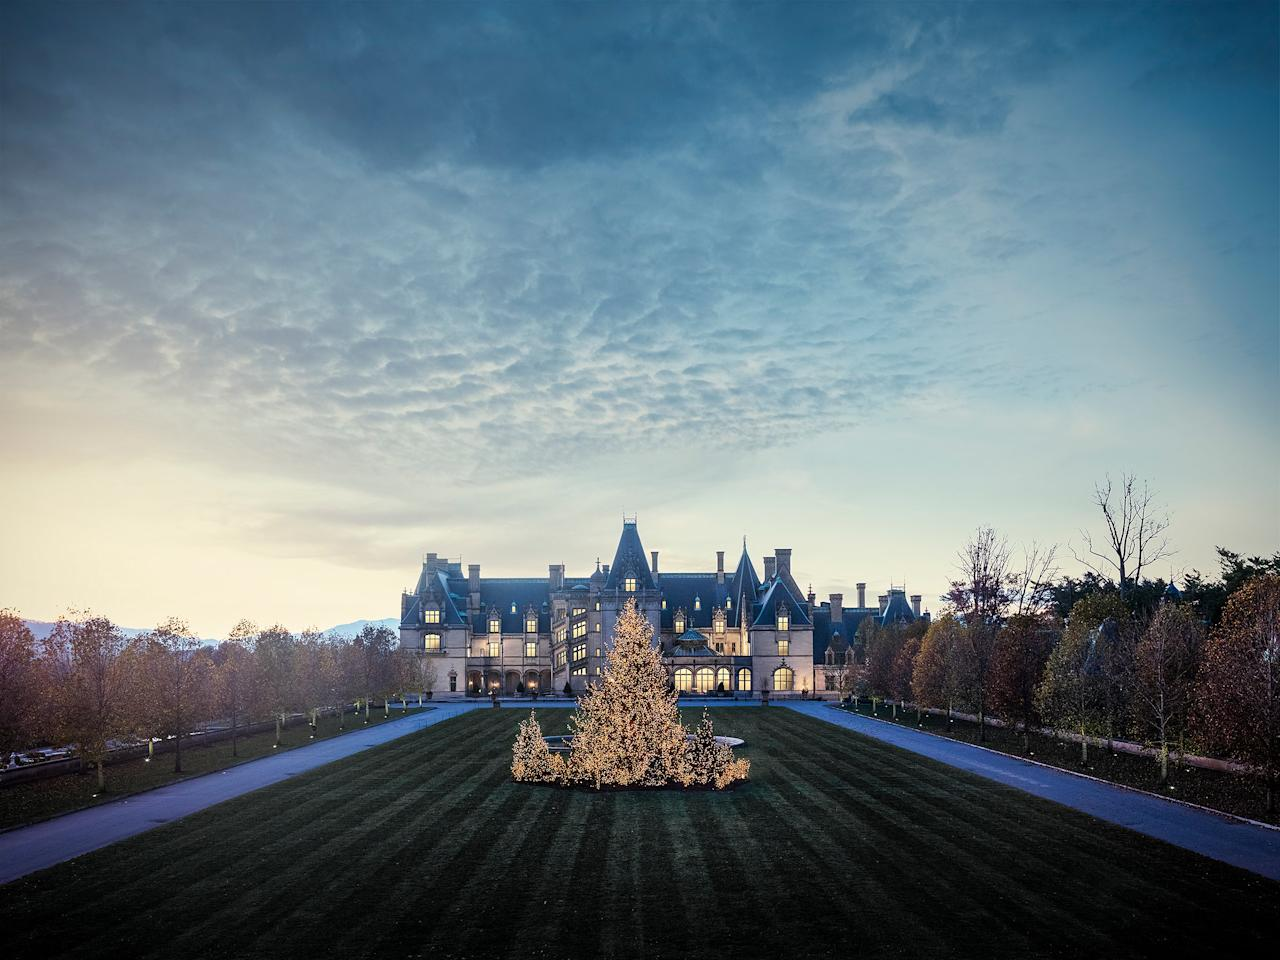 "If the excitement of the <a href=""https://people.com/movies/downton-abbey-stars-tease-new-movie-and-sequel/""><em>Downton Abbey</em> movie</a> release has already worn off and you need a new fan fix, perhaps a trip to the Biltmore is in order. From November 8 through April 7, the sprawling Asheville, N.C. property—where George Vanderbilt built his colossal mansion in the 1890s—will let guests step inside the Crawley family's estate with Downton Abbey: The Exhibition. The opening coincides with the arrival of Biltmore's famously ornate holiday decorations, and offers visitors an immersive experience in a setting that's evocative of the hit series. Scroll through for a peek inside the exhibition."